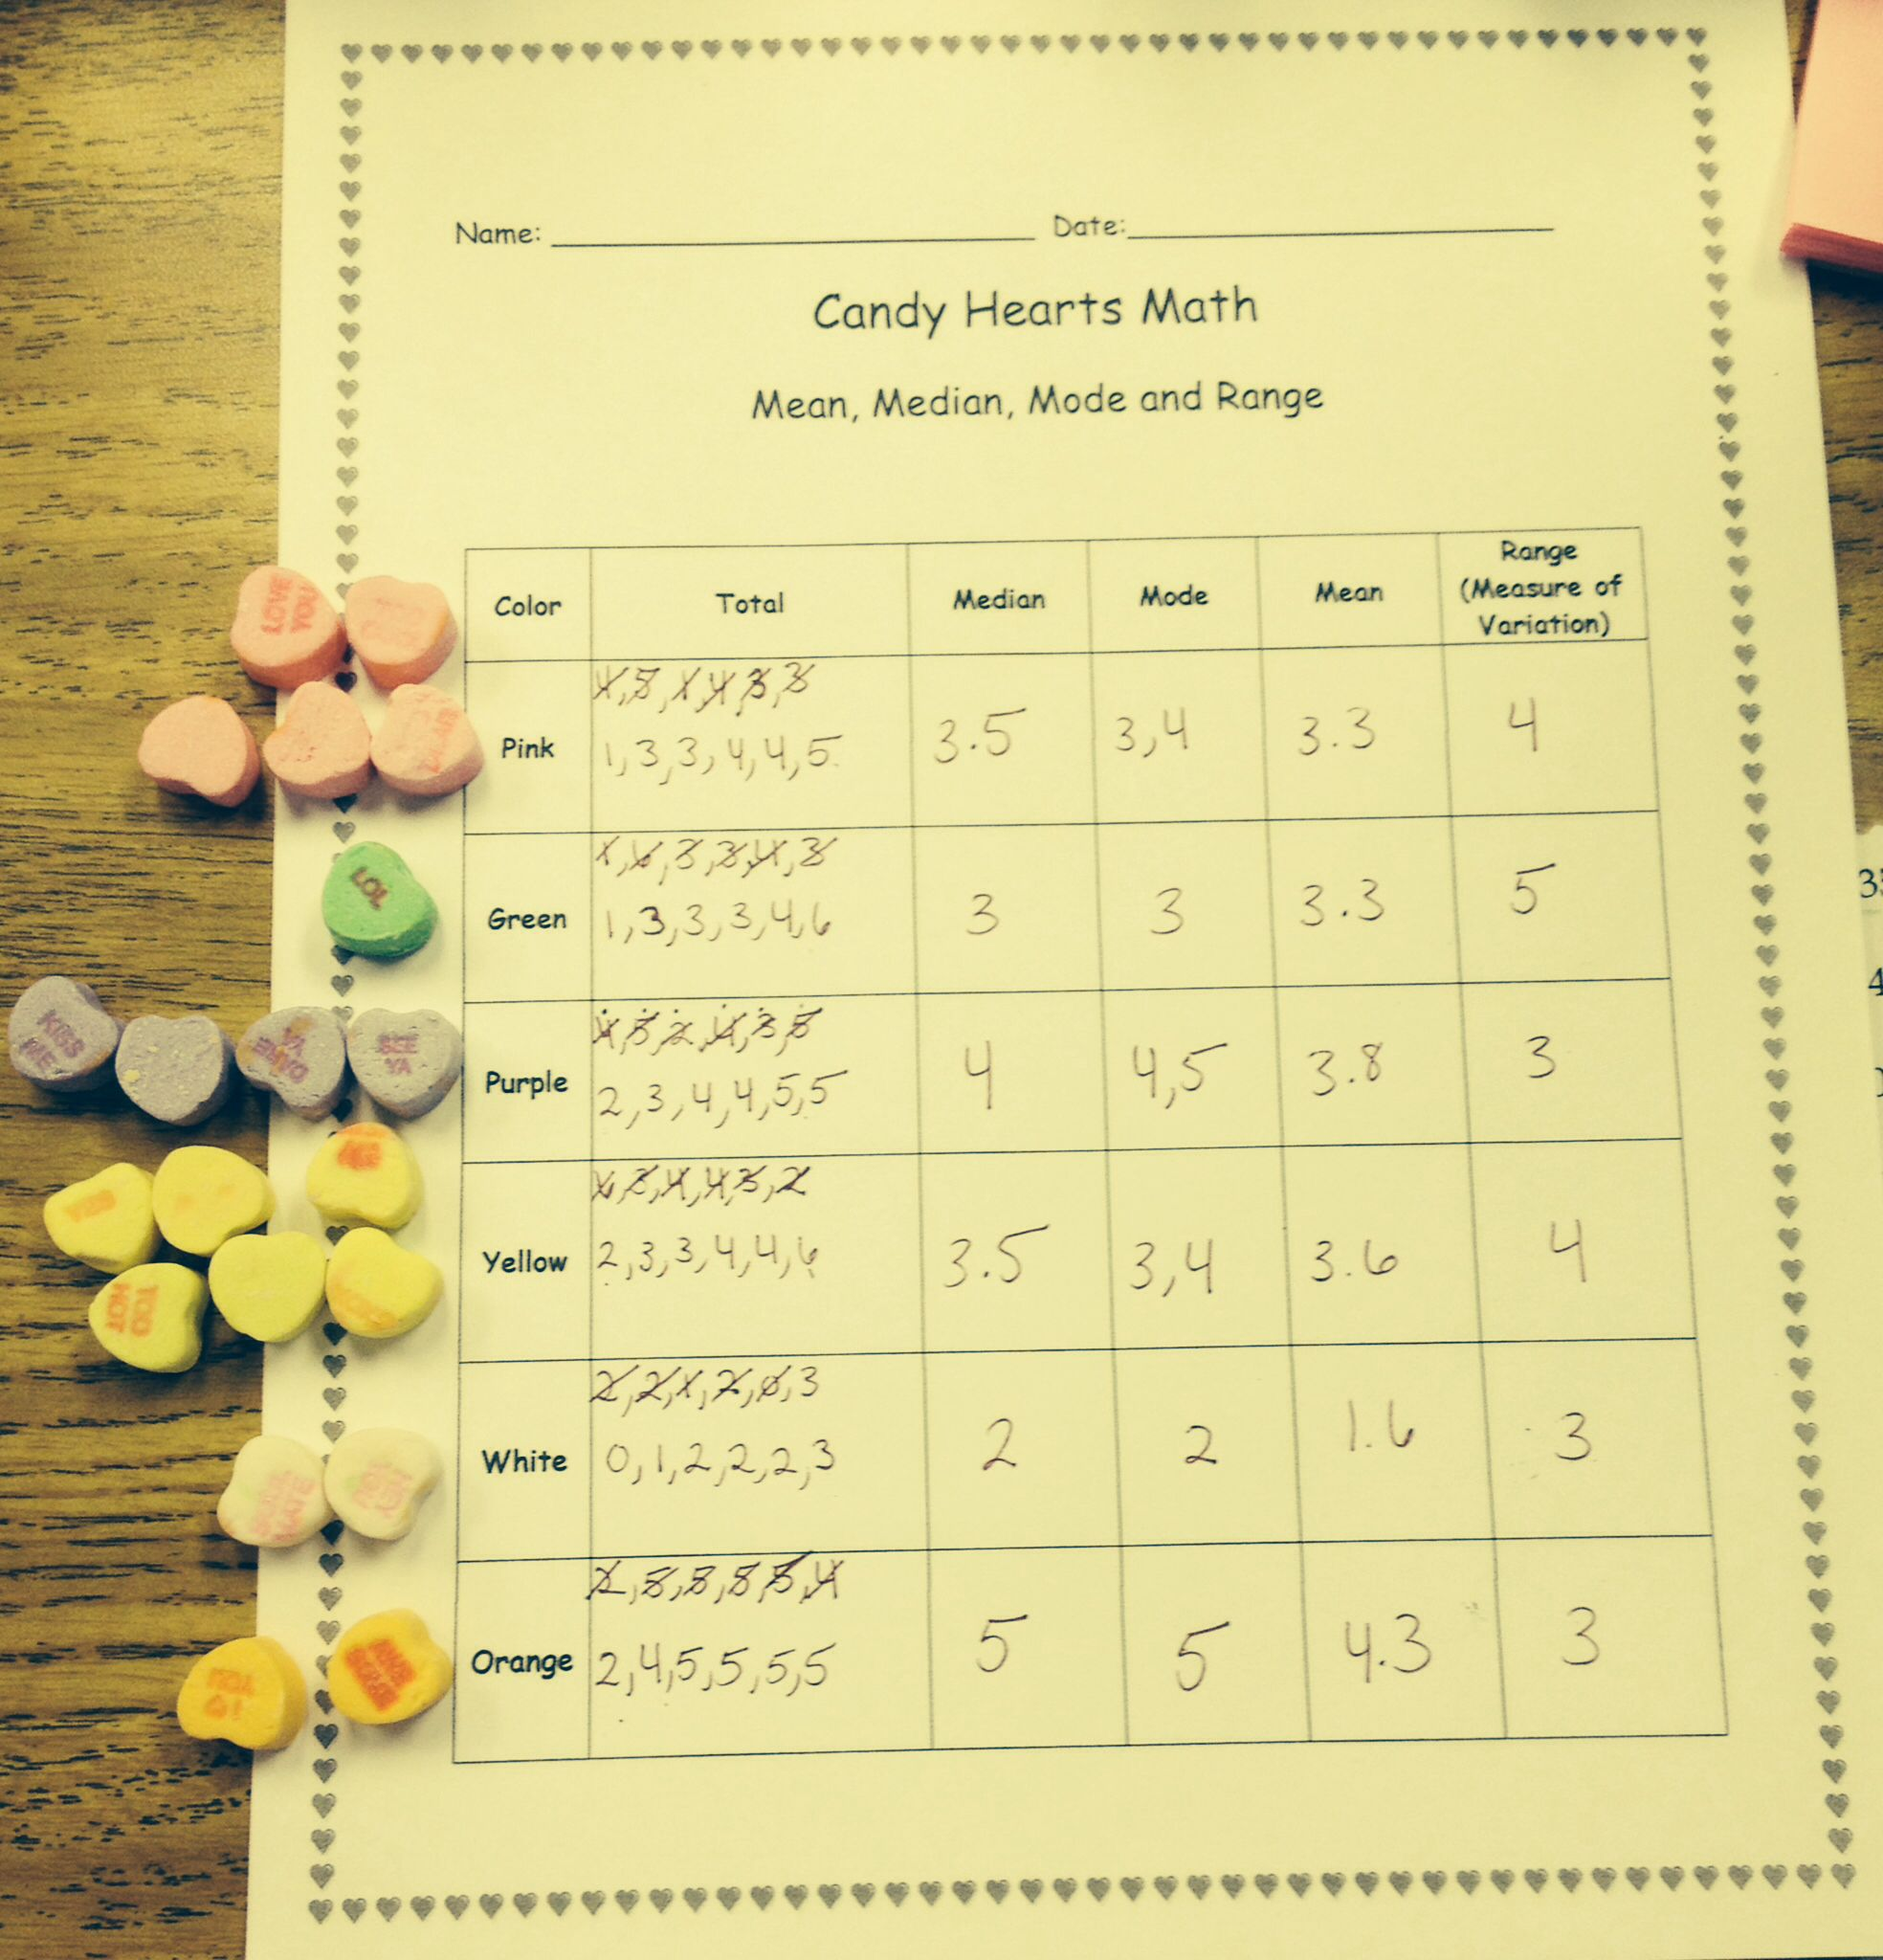 Mean Median Mode And Range Candy Hearts Math Each